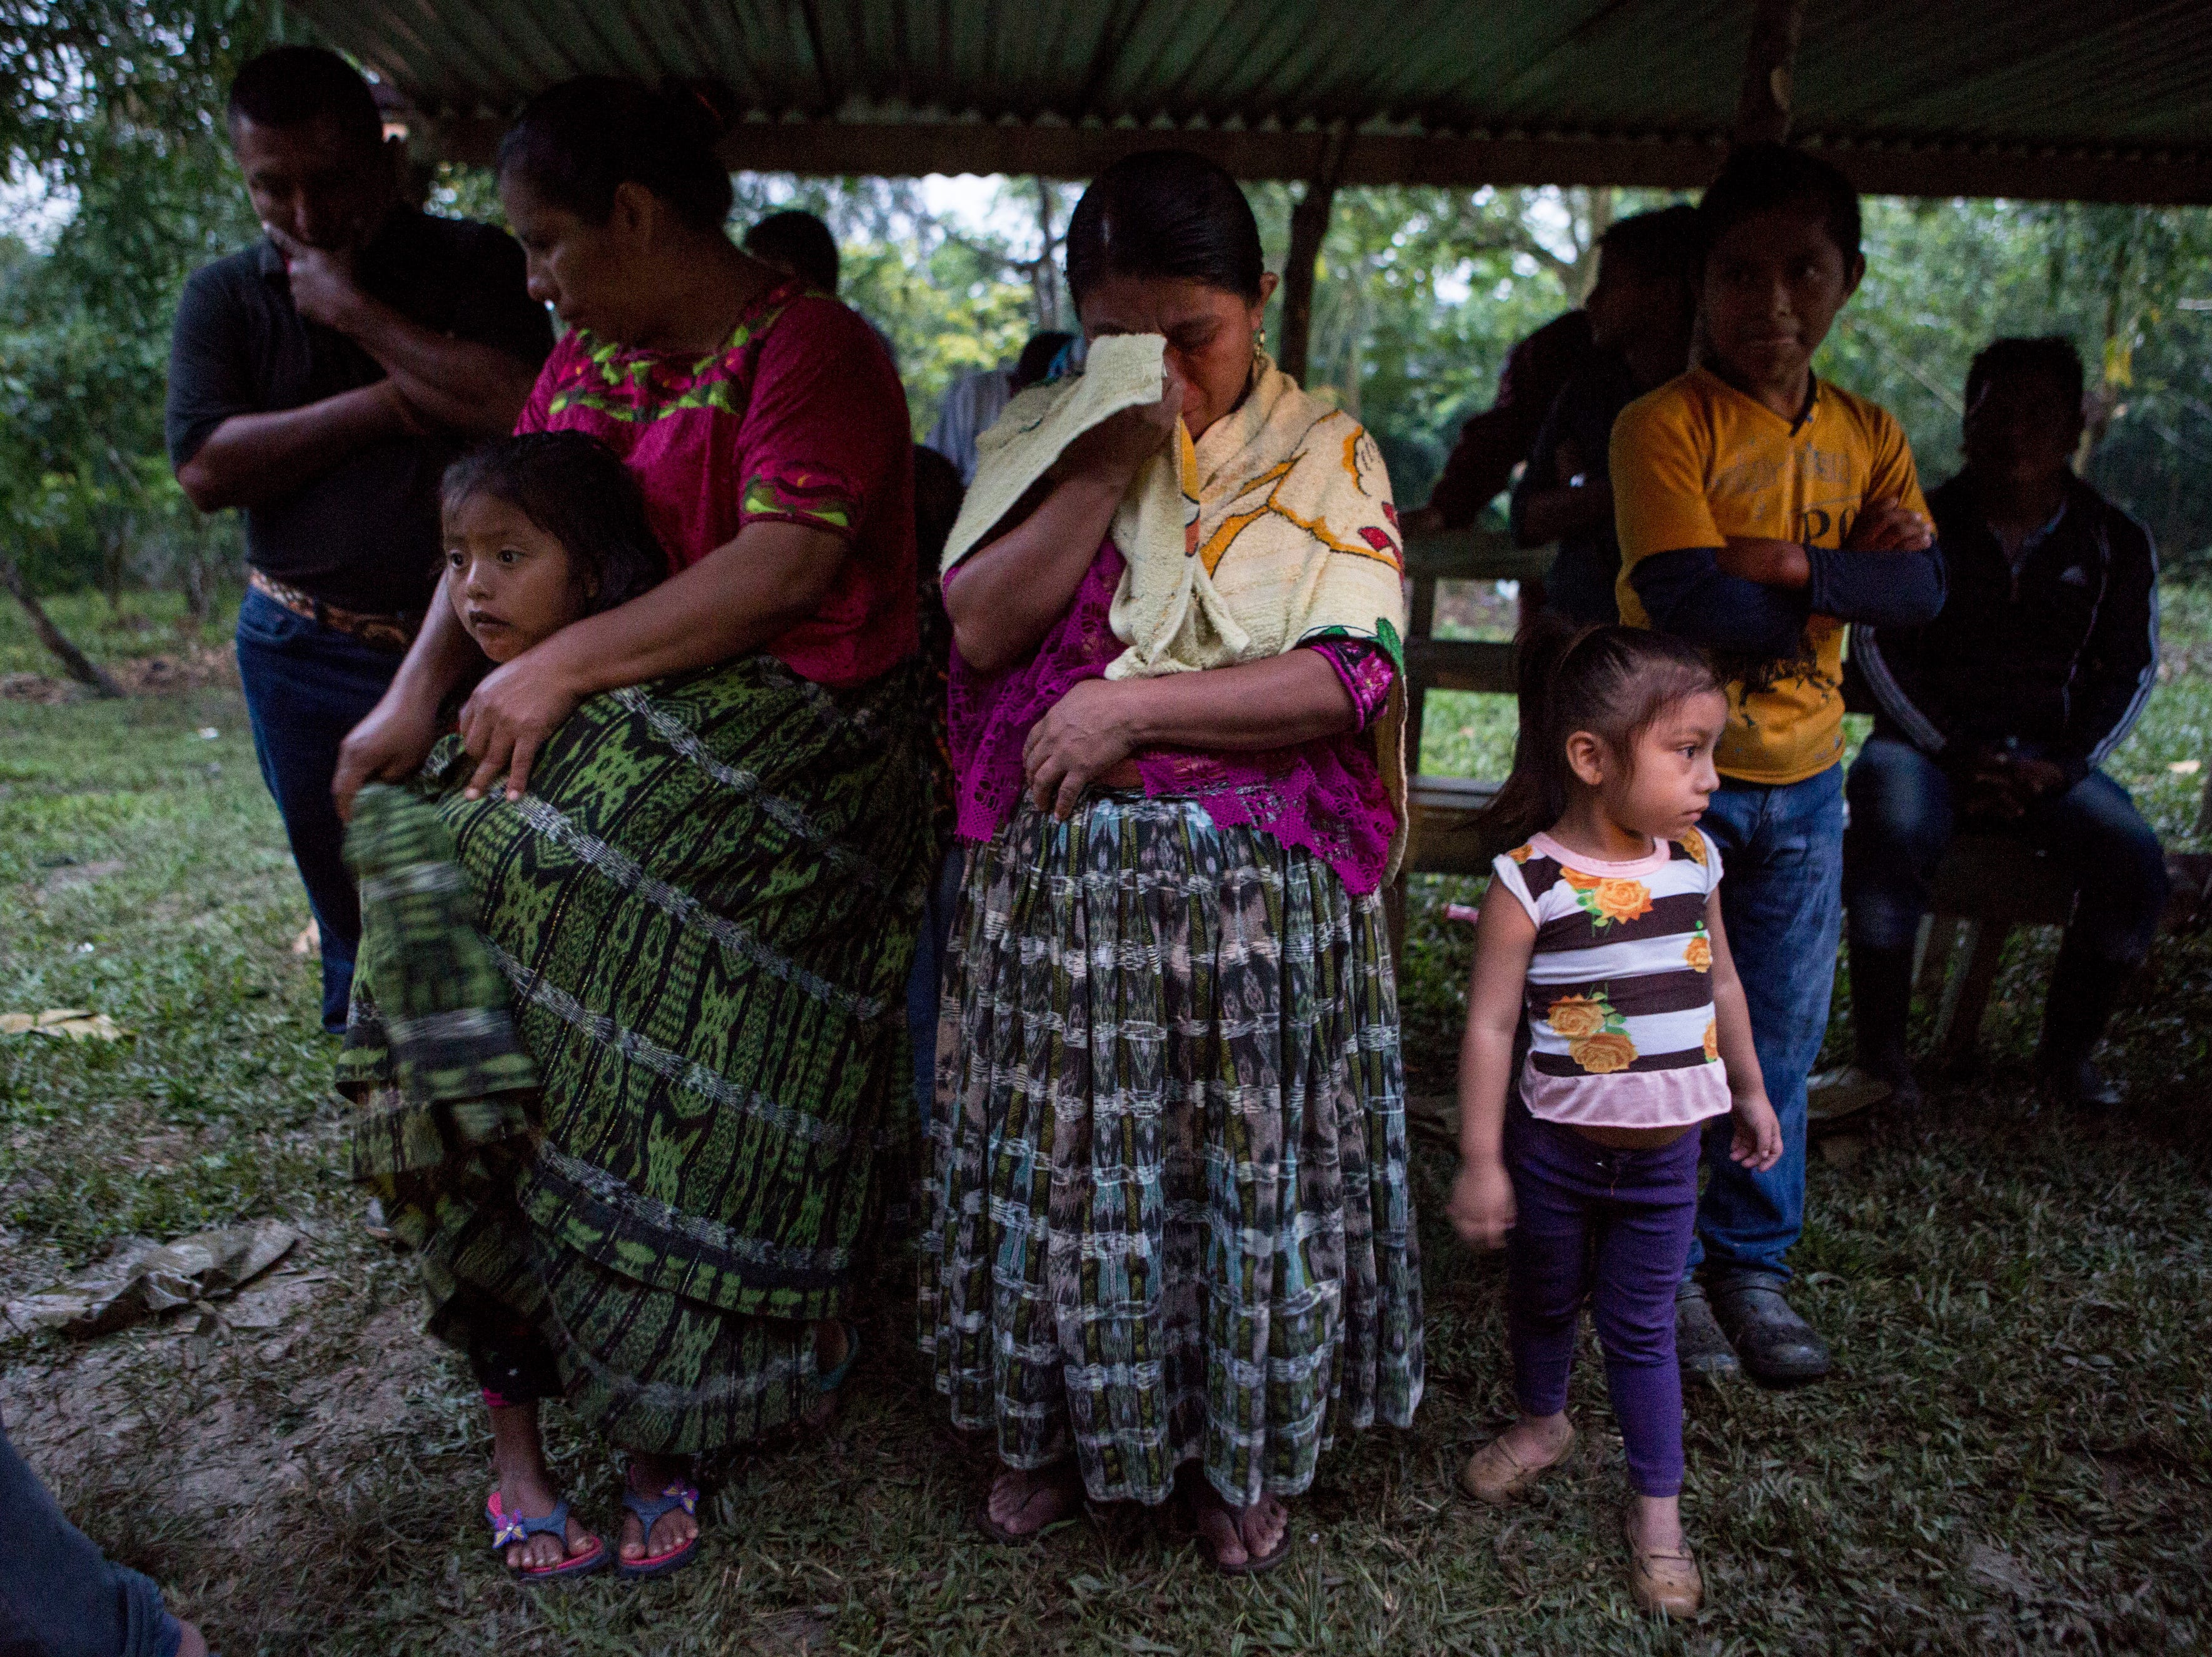 Family members attend a memorial service for 7-year-old granddaughter Jakelin Caal Maquin, in San Antonio Secortez, Guatemala, Monday, Dec. 24, 2018. The body of the 7-year-old girl who died while in the custody of the U.S. Border Patrol was handed over to family members in her native Guatemala on Monday for a last goodbye.